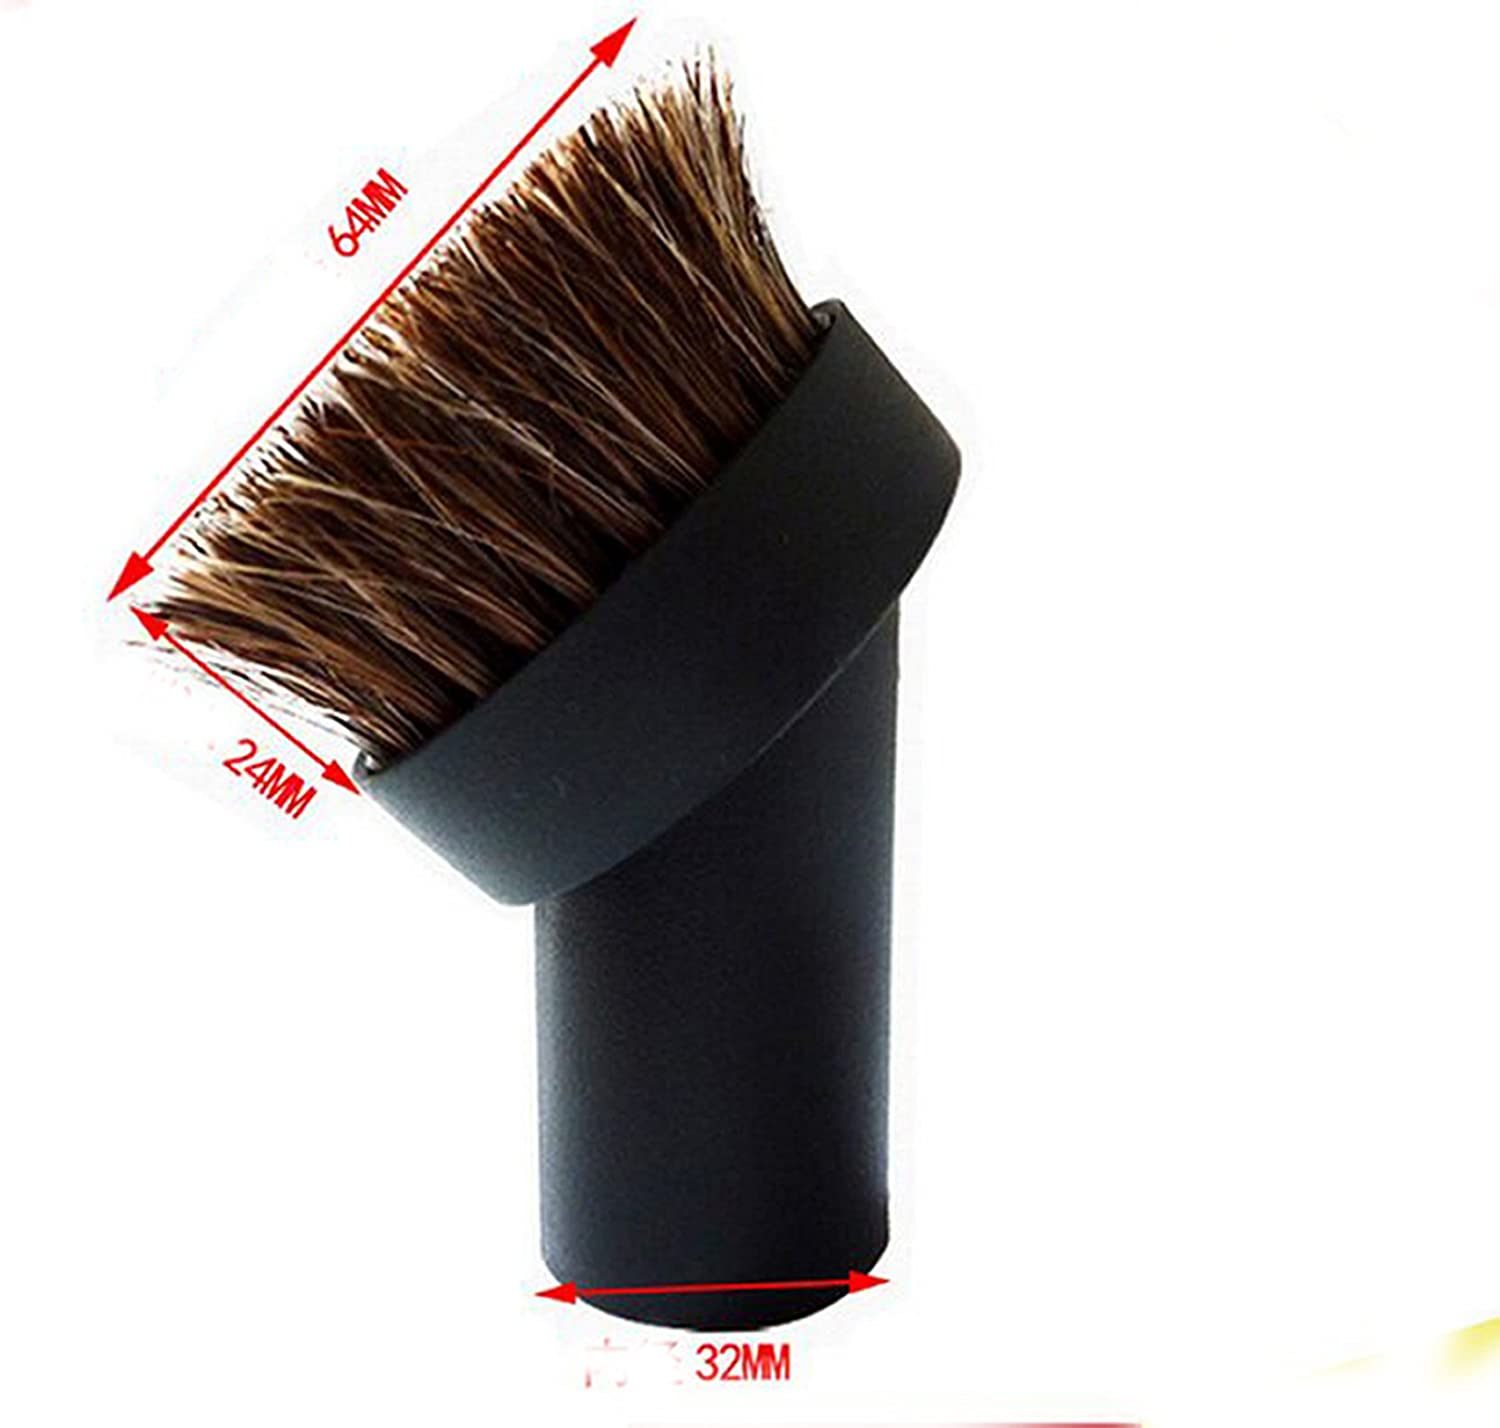 Round Vacuum Cleaner Attachment Round 32mm Horse Hair Dusting Brush Dust Tool